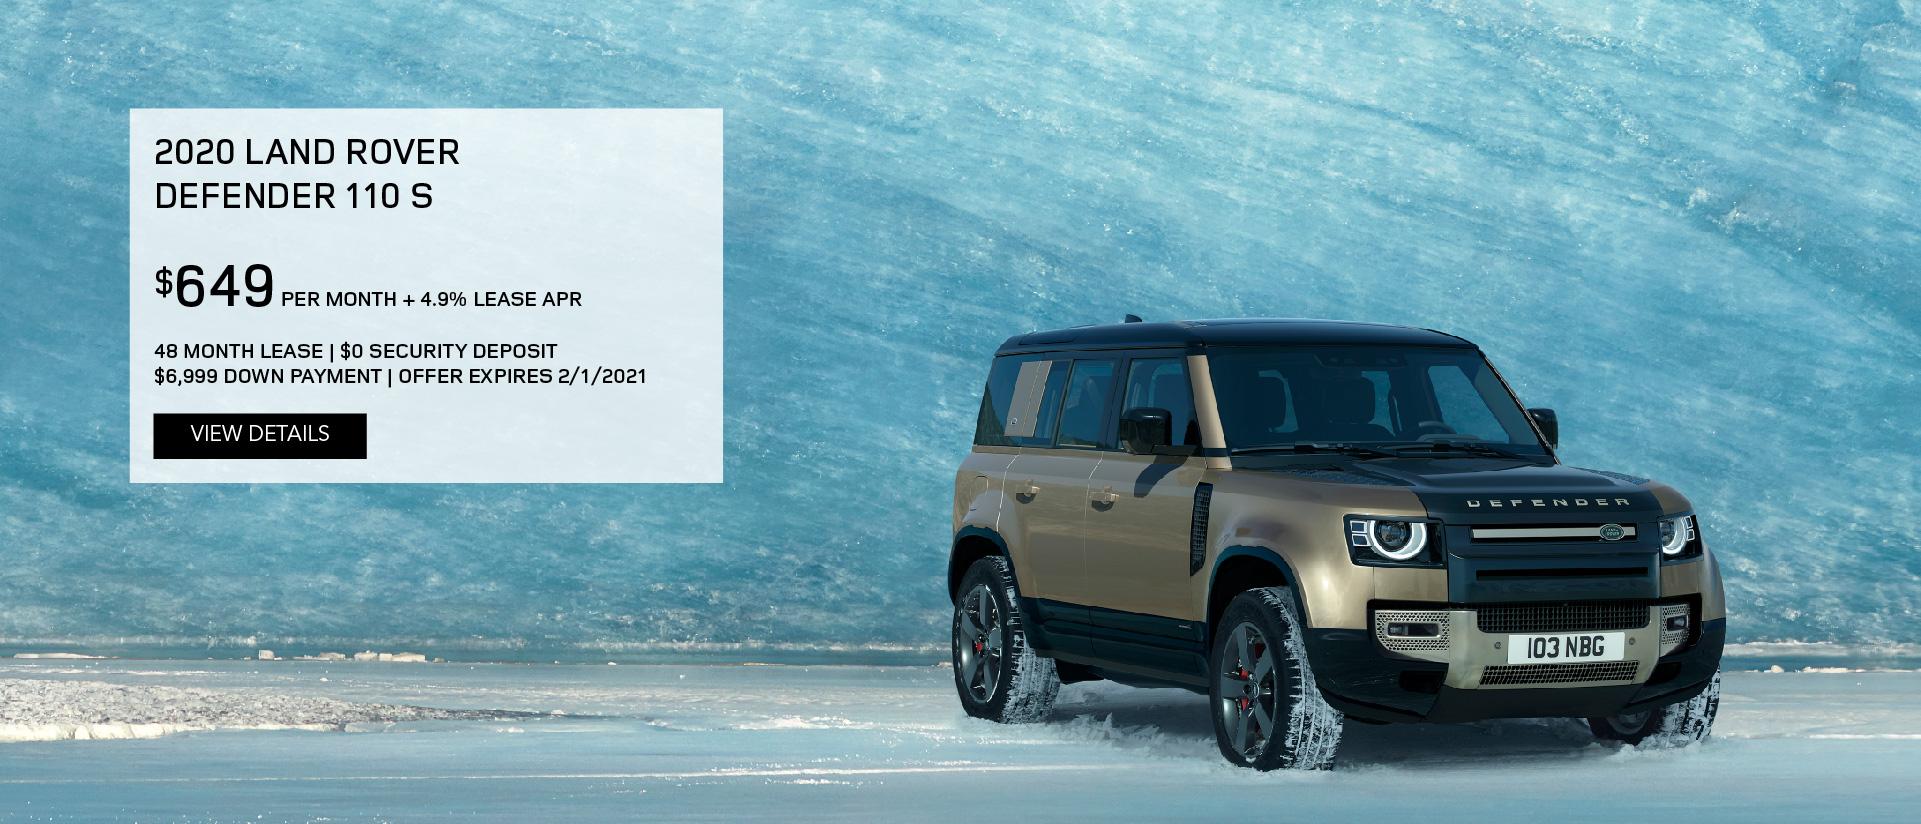 2020 Land Rover Defender on snowy landscape in front of iceberg.